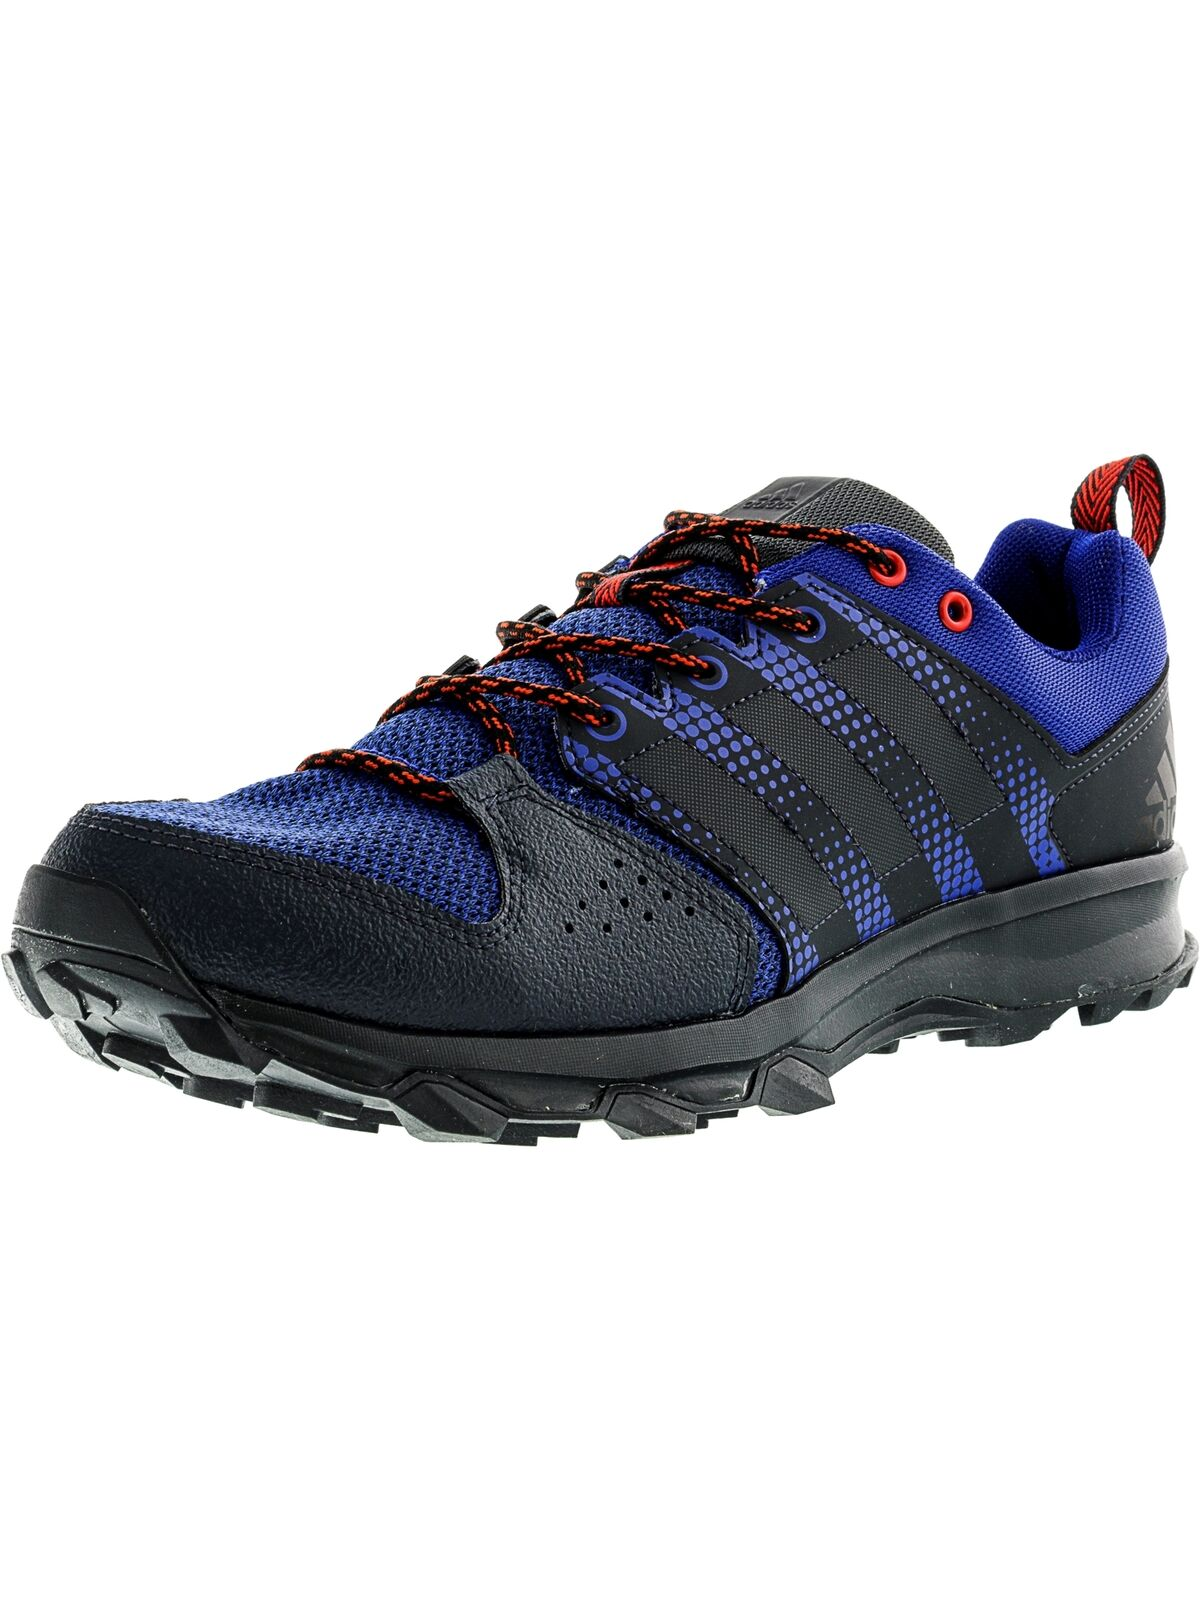 Adidas Men's Galaxy Trail Ankle-High Running Shoe